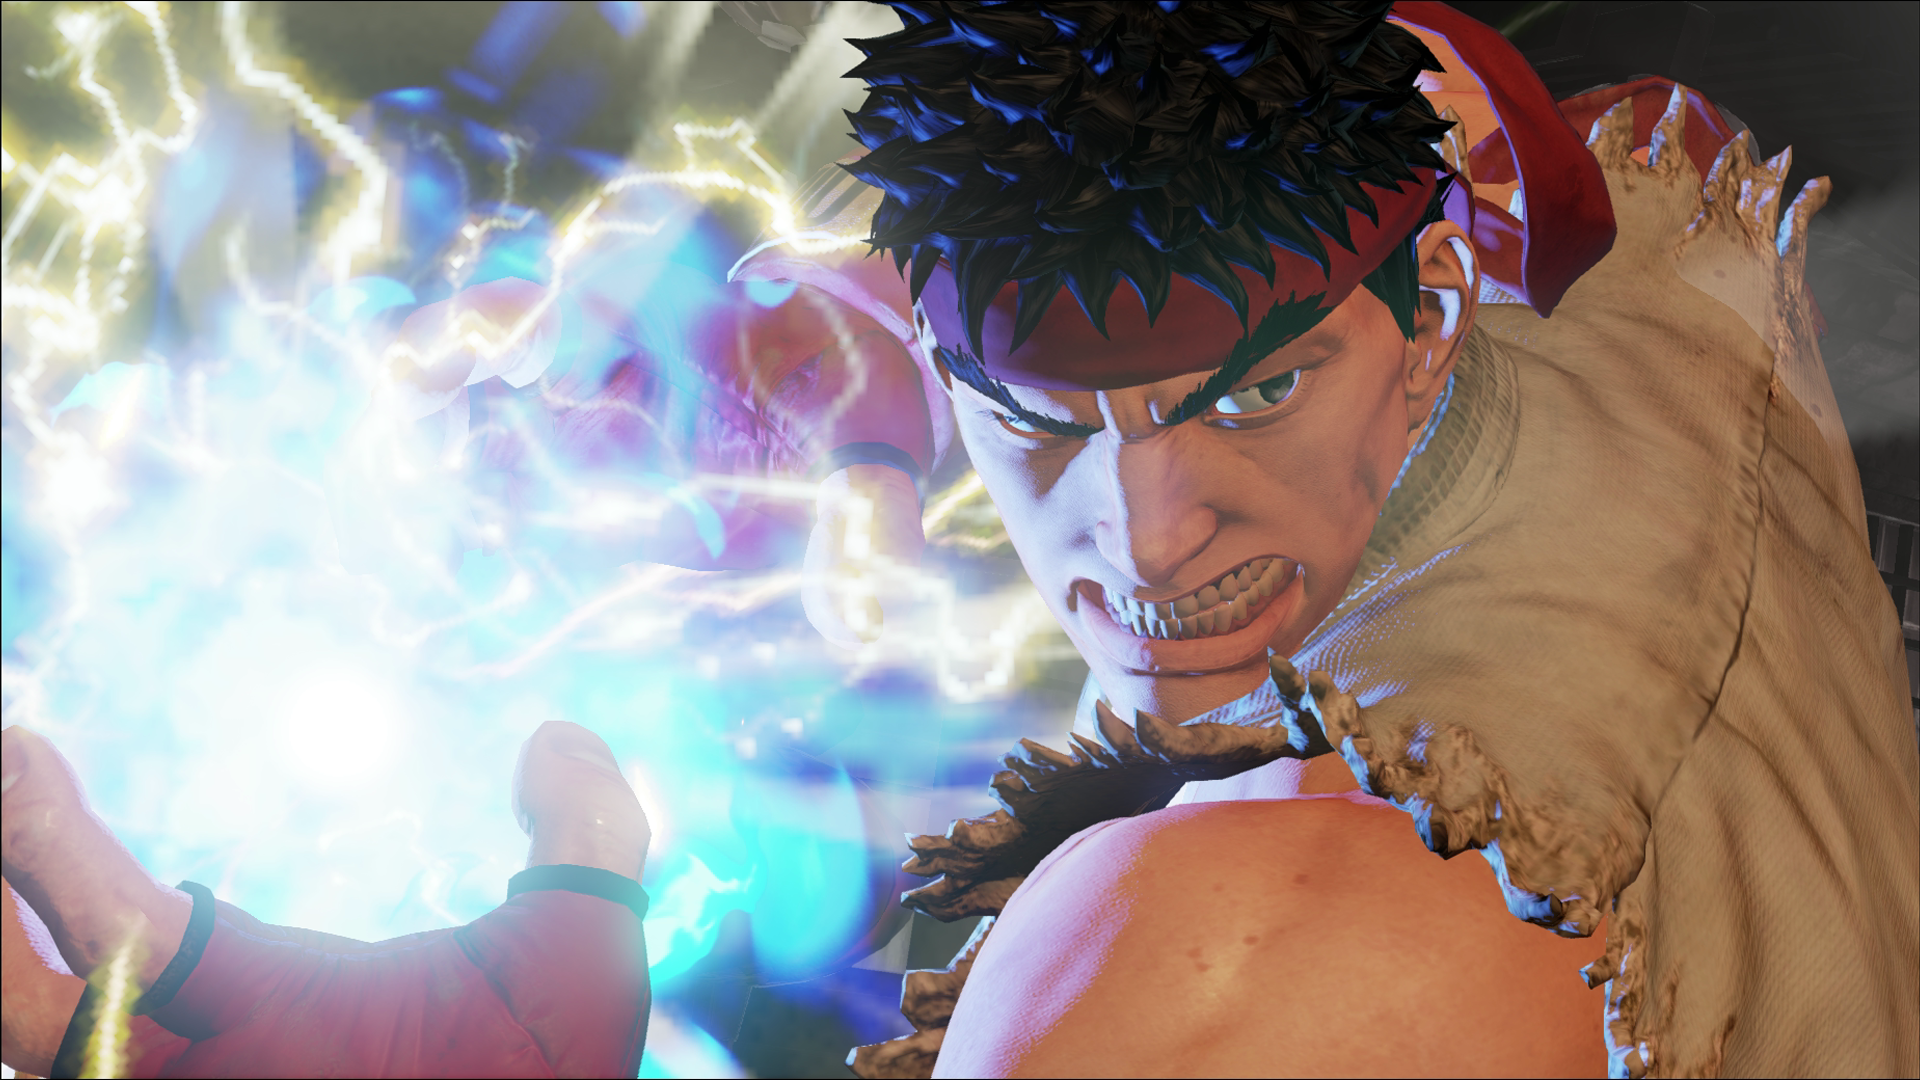 Street fighter v hd wallpaper full hd pictures - V wallpaper hd ...